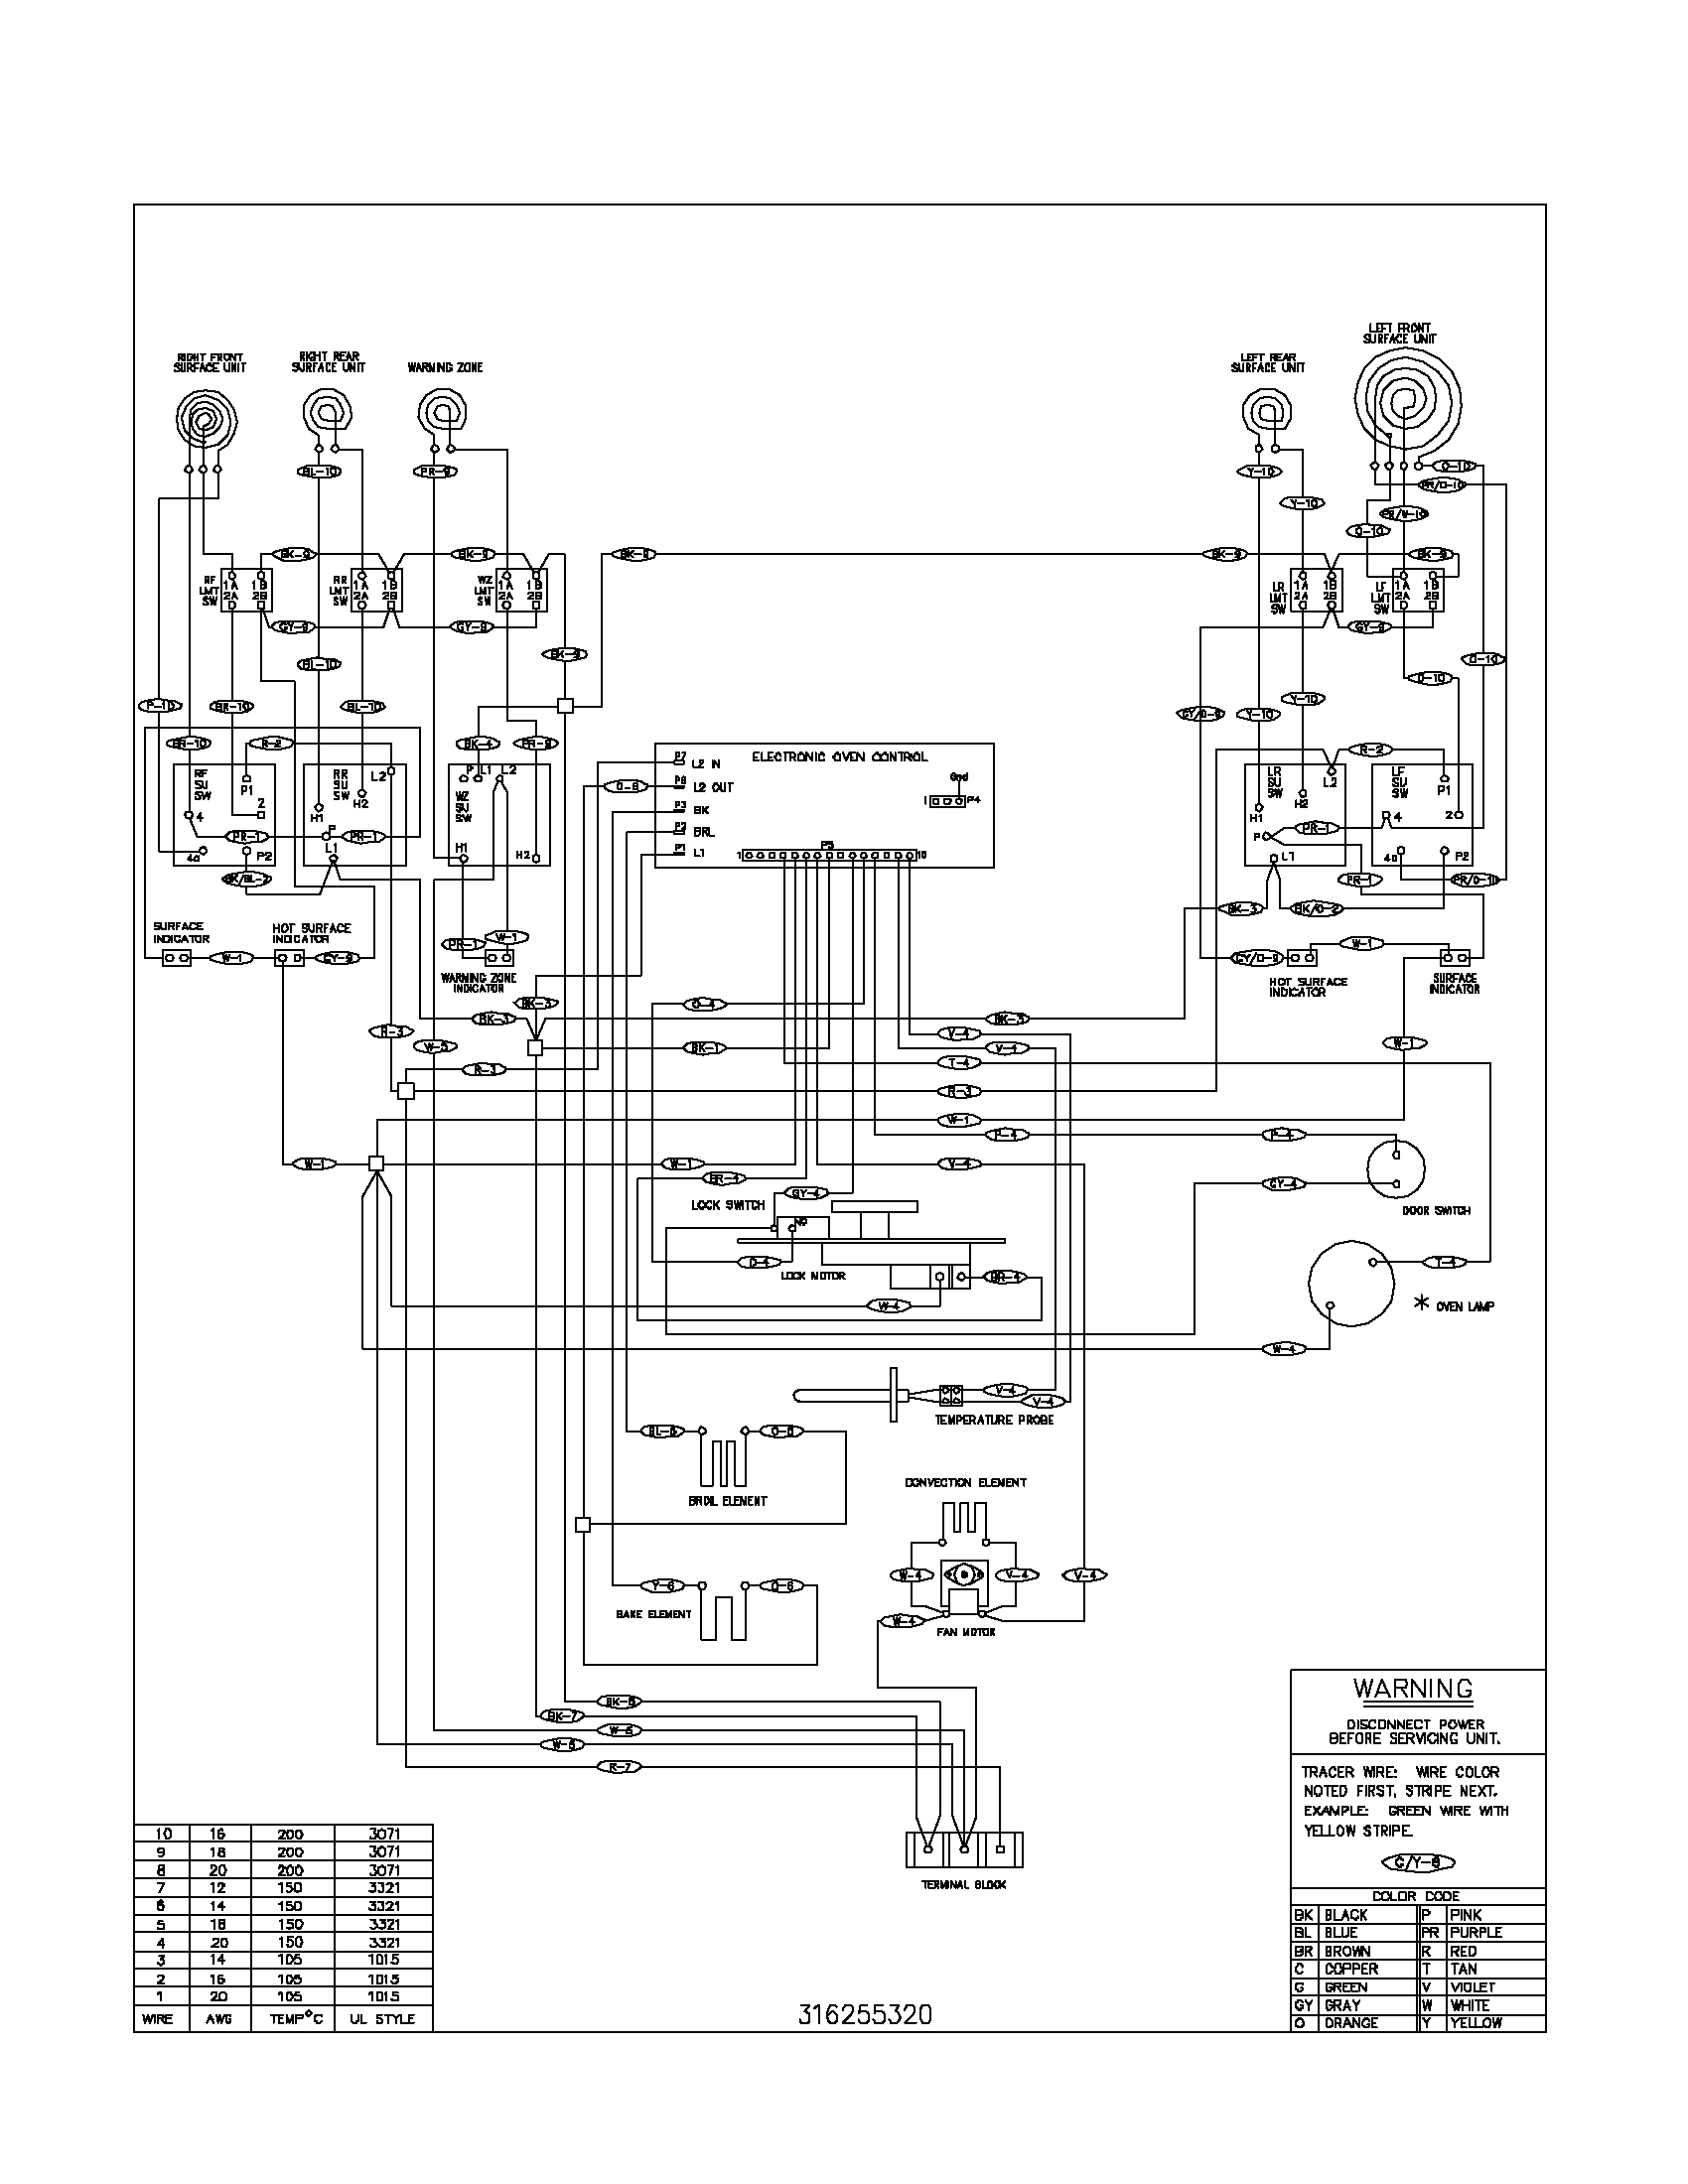 ge range electrical diagram wiring diagram data oreo Schematic Oven Electric Thermostat Wb20t10012 ge range wiring schematic wiring diagram data oreo ge range manual ge range electrical diagram